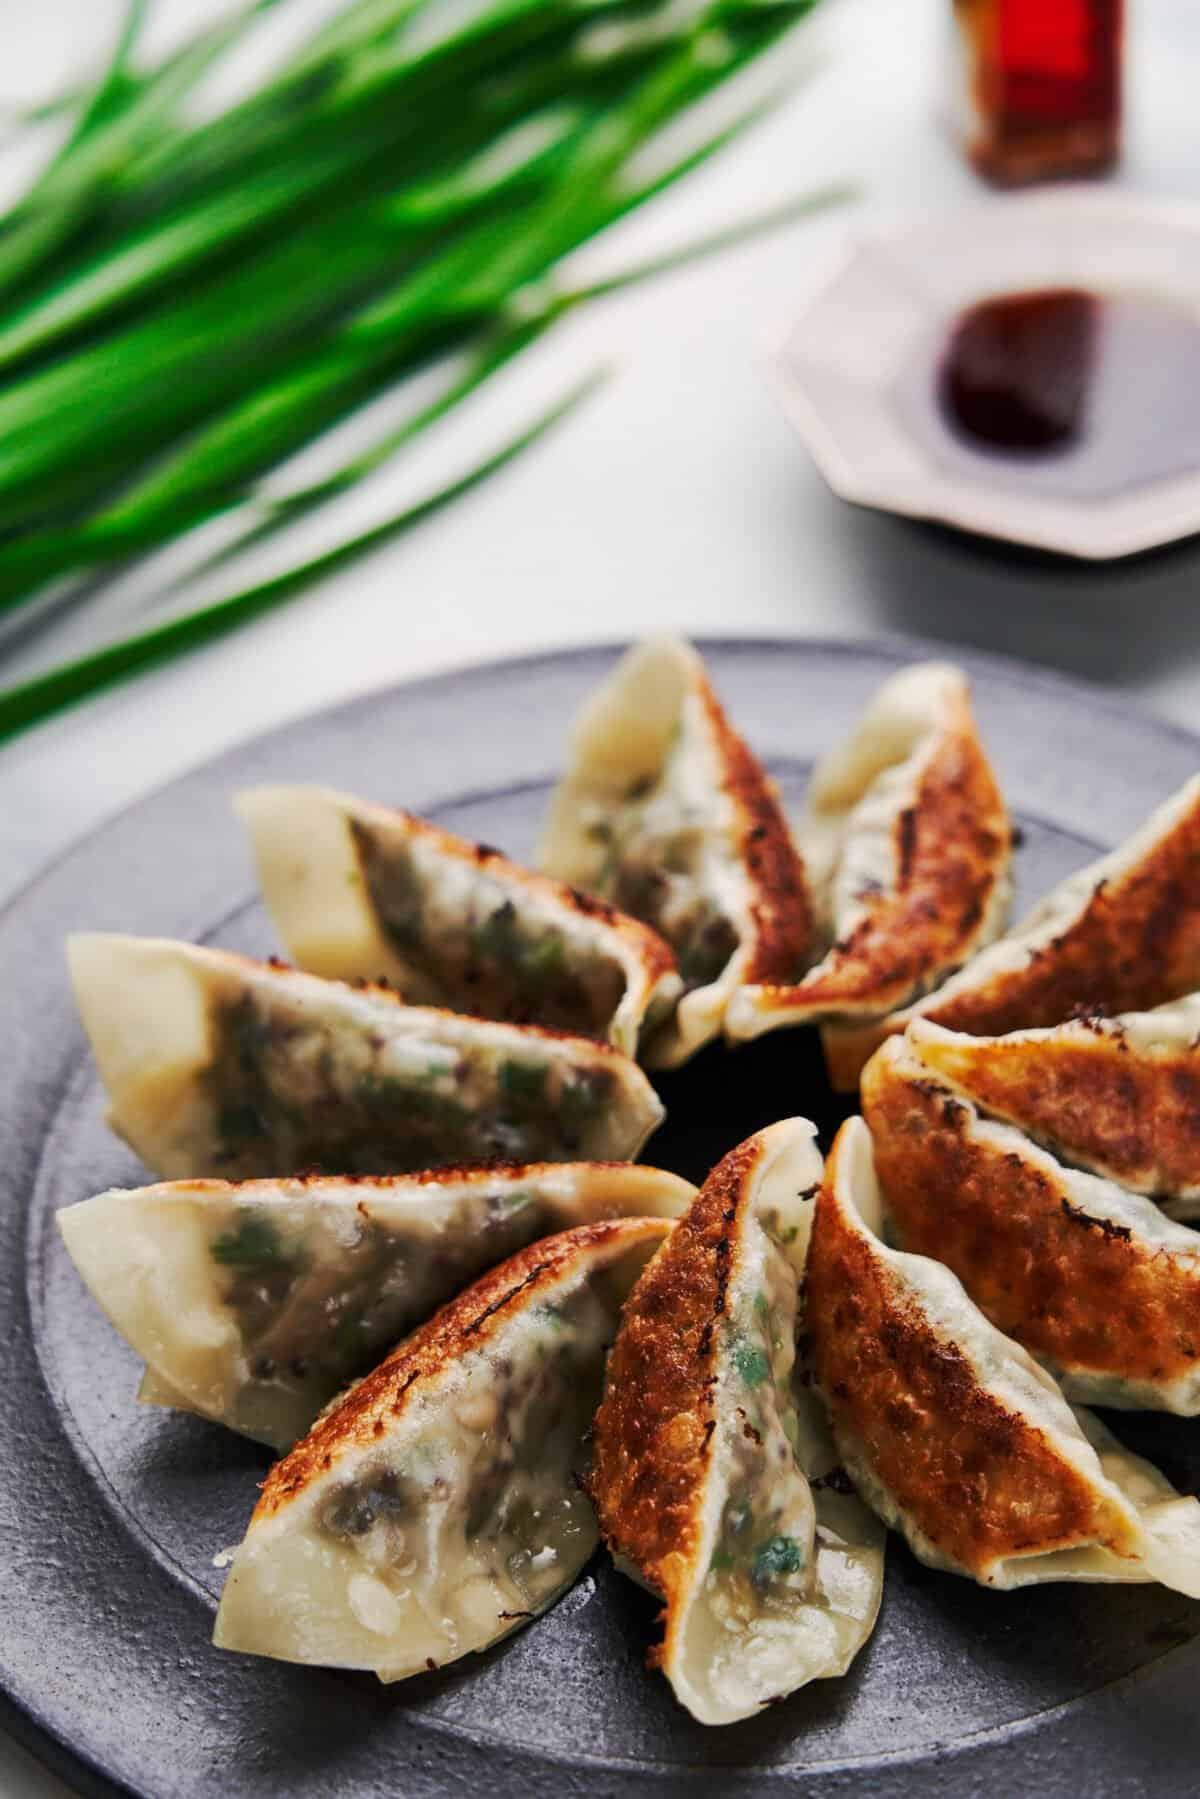 These vegetable gyoza dumplings are plant-based and yet they're umami bombs that'll make meat-eaters drool.